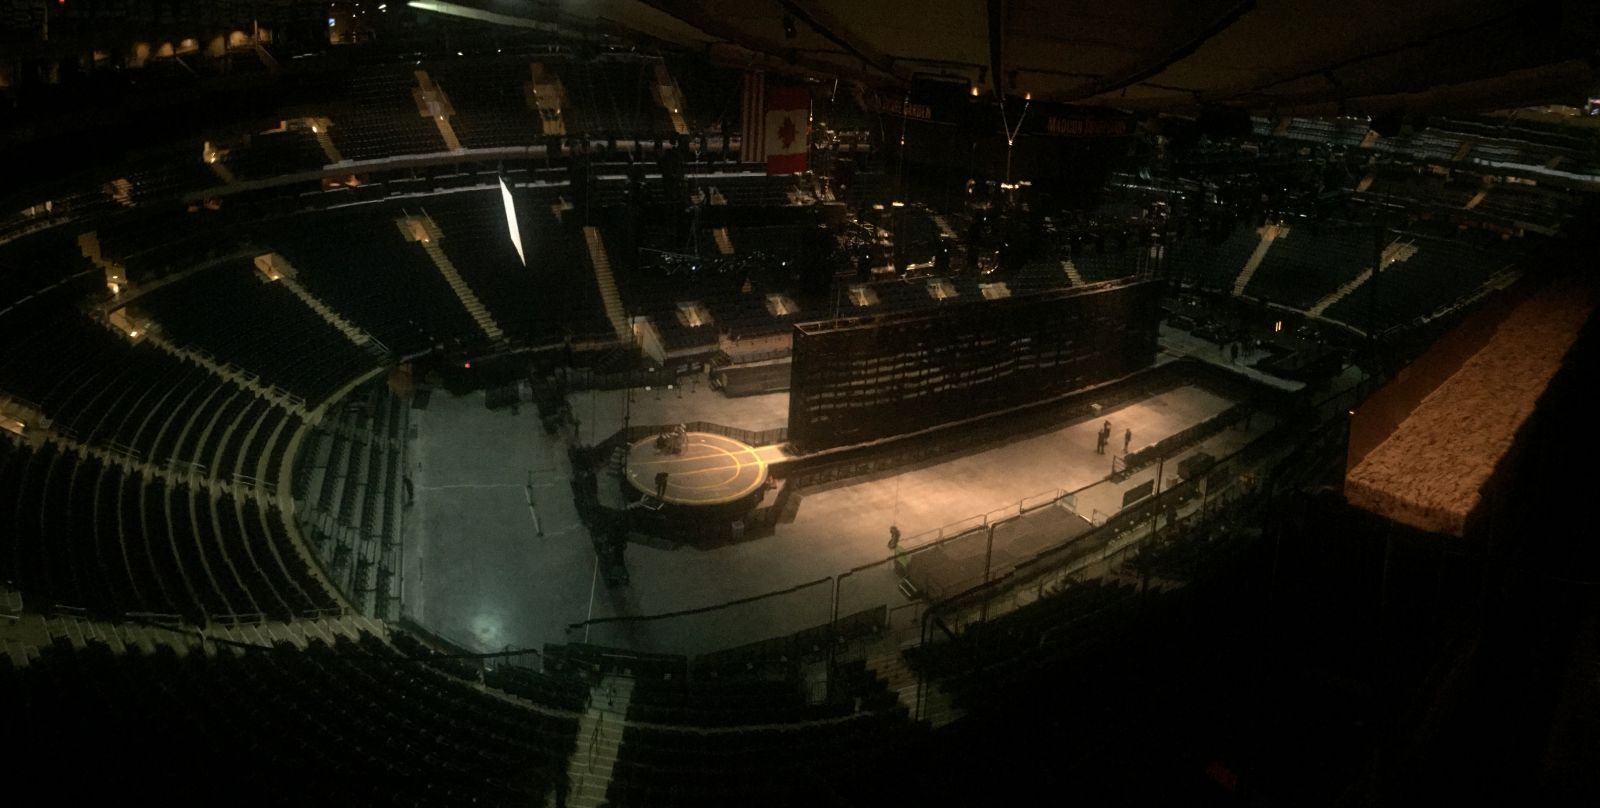 Cropped version: Stage view from the catwalks at MSG